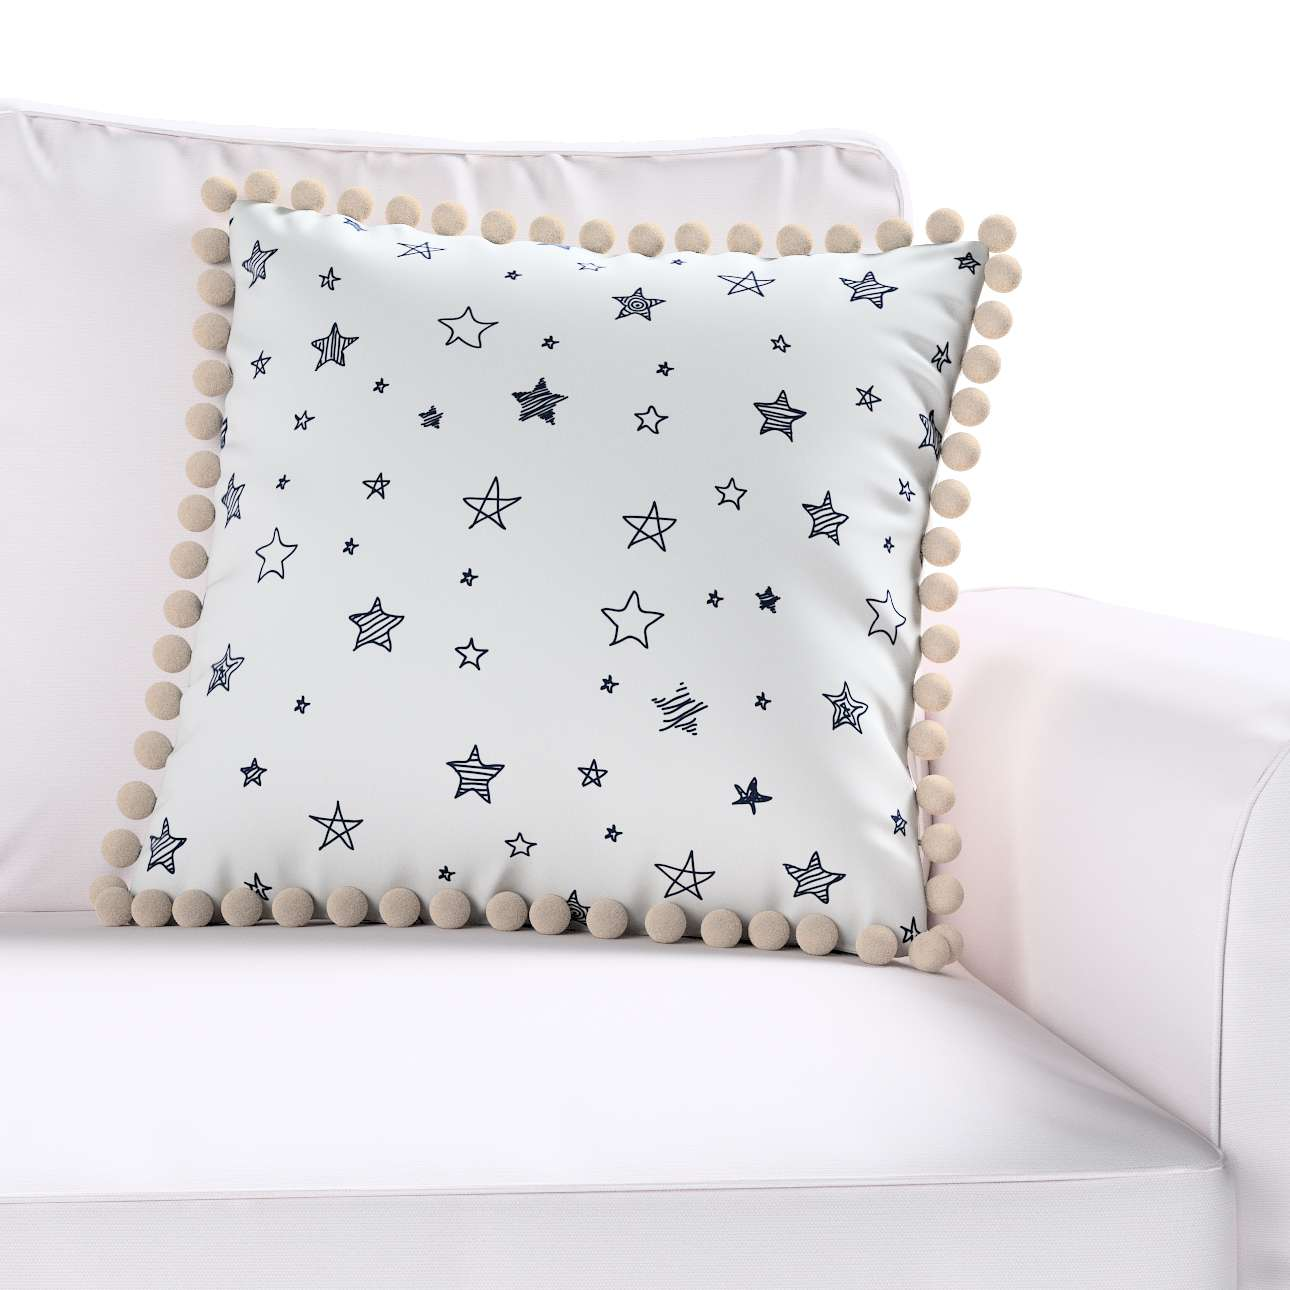 Daisy cushion covers with pom poms in collection Magic Collection, fabric: 500-08